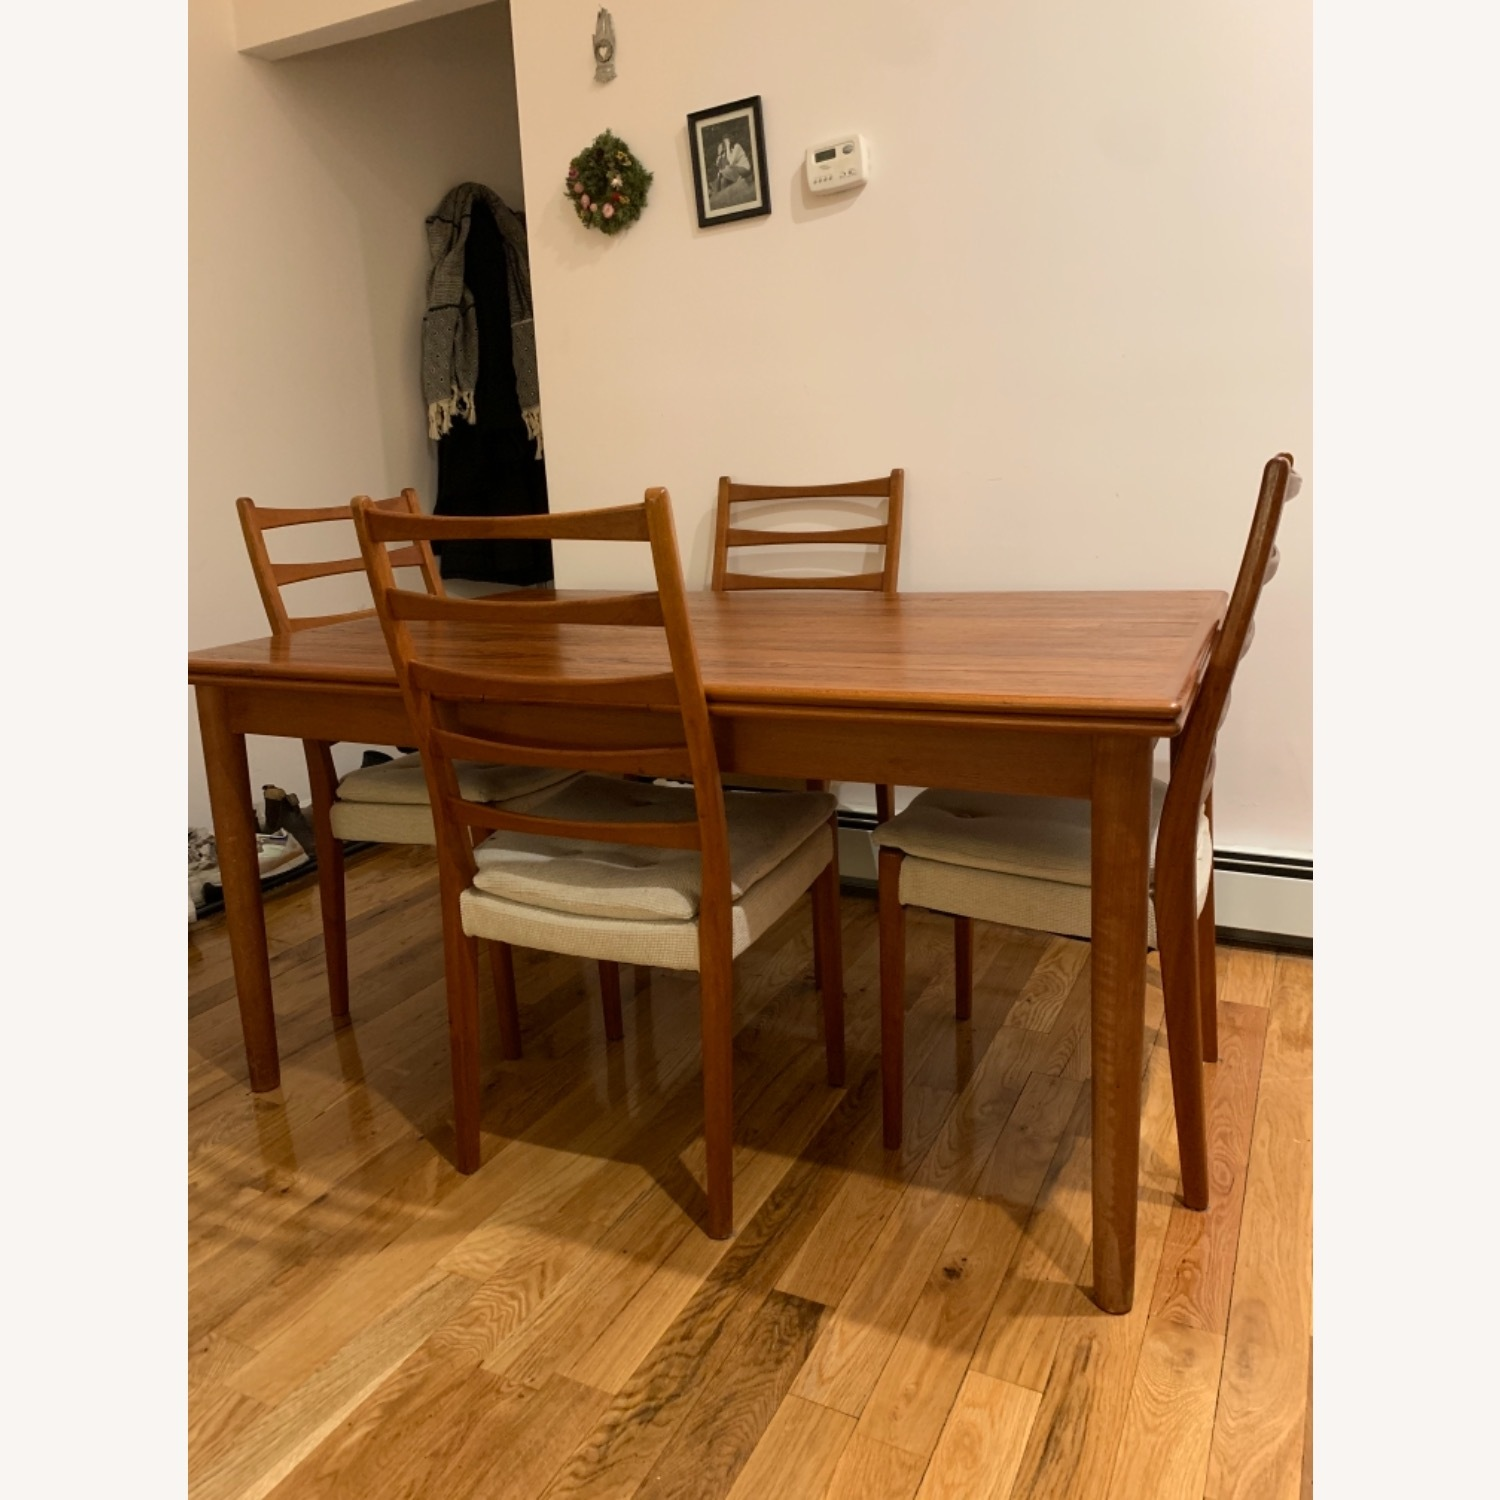 Mid Century Extendable Dining Table w/Four Chairs - image-2